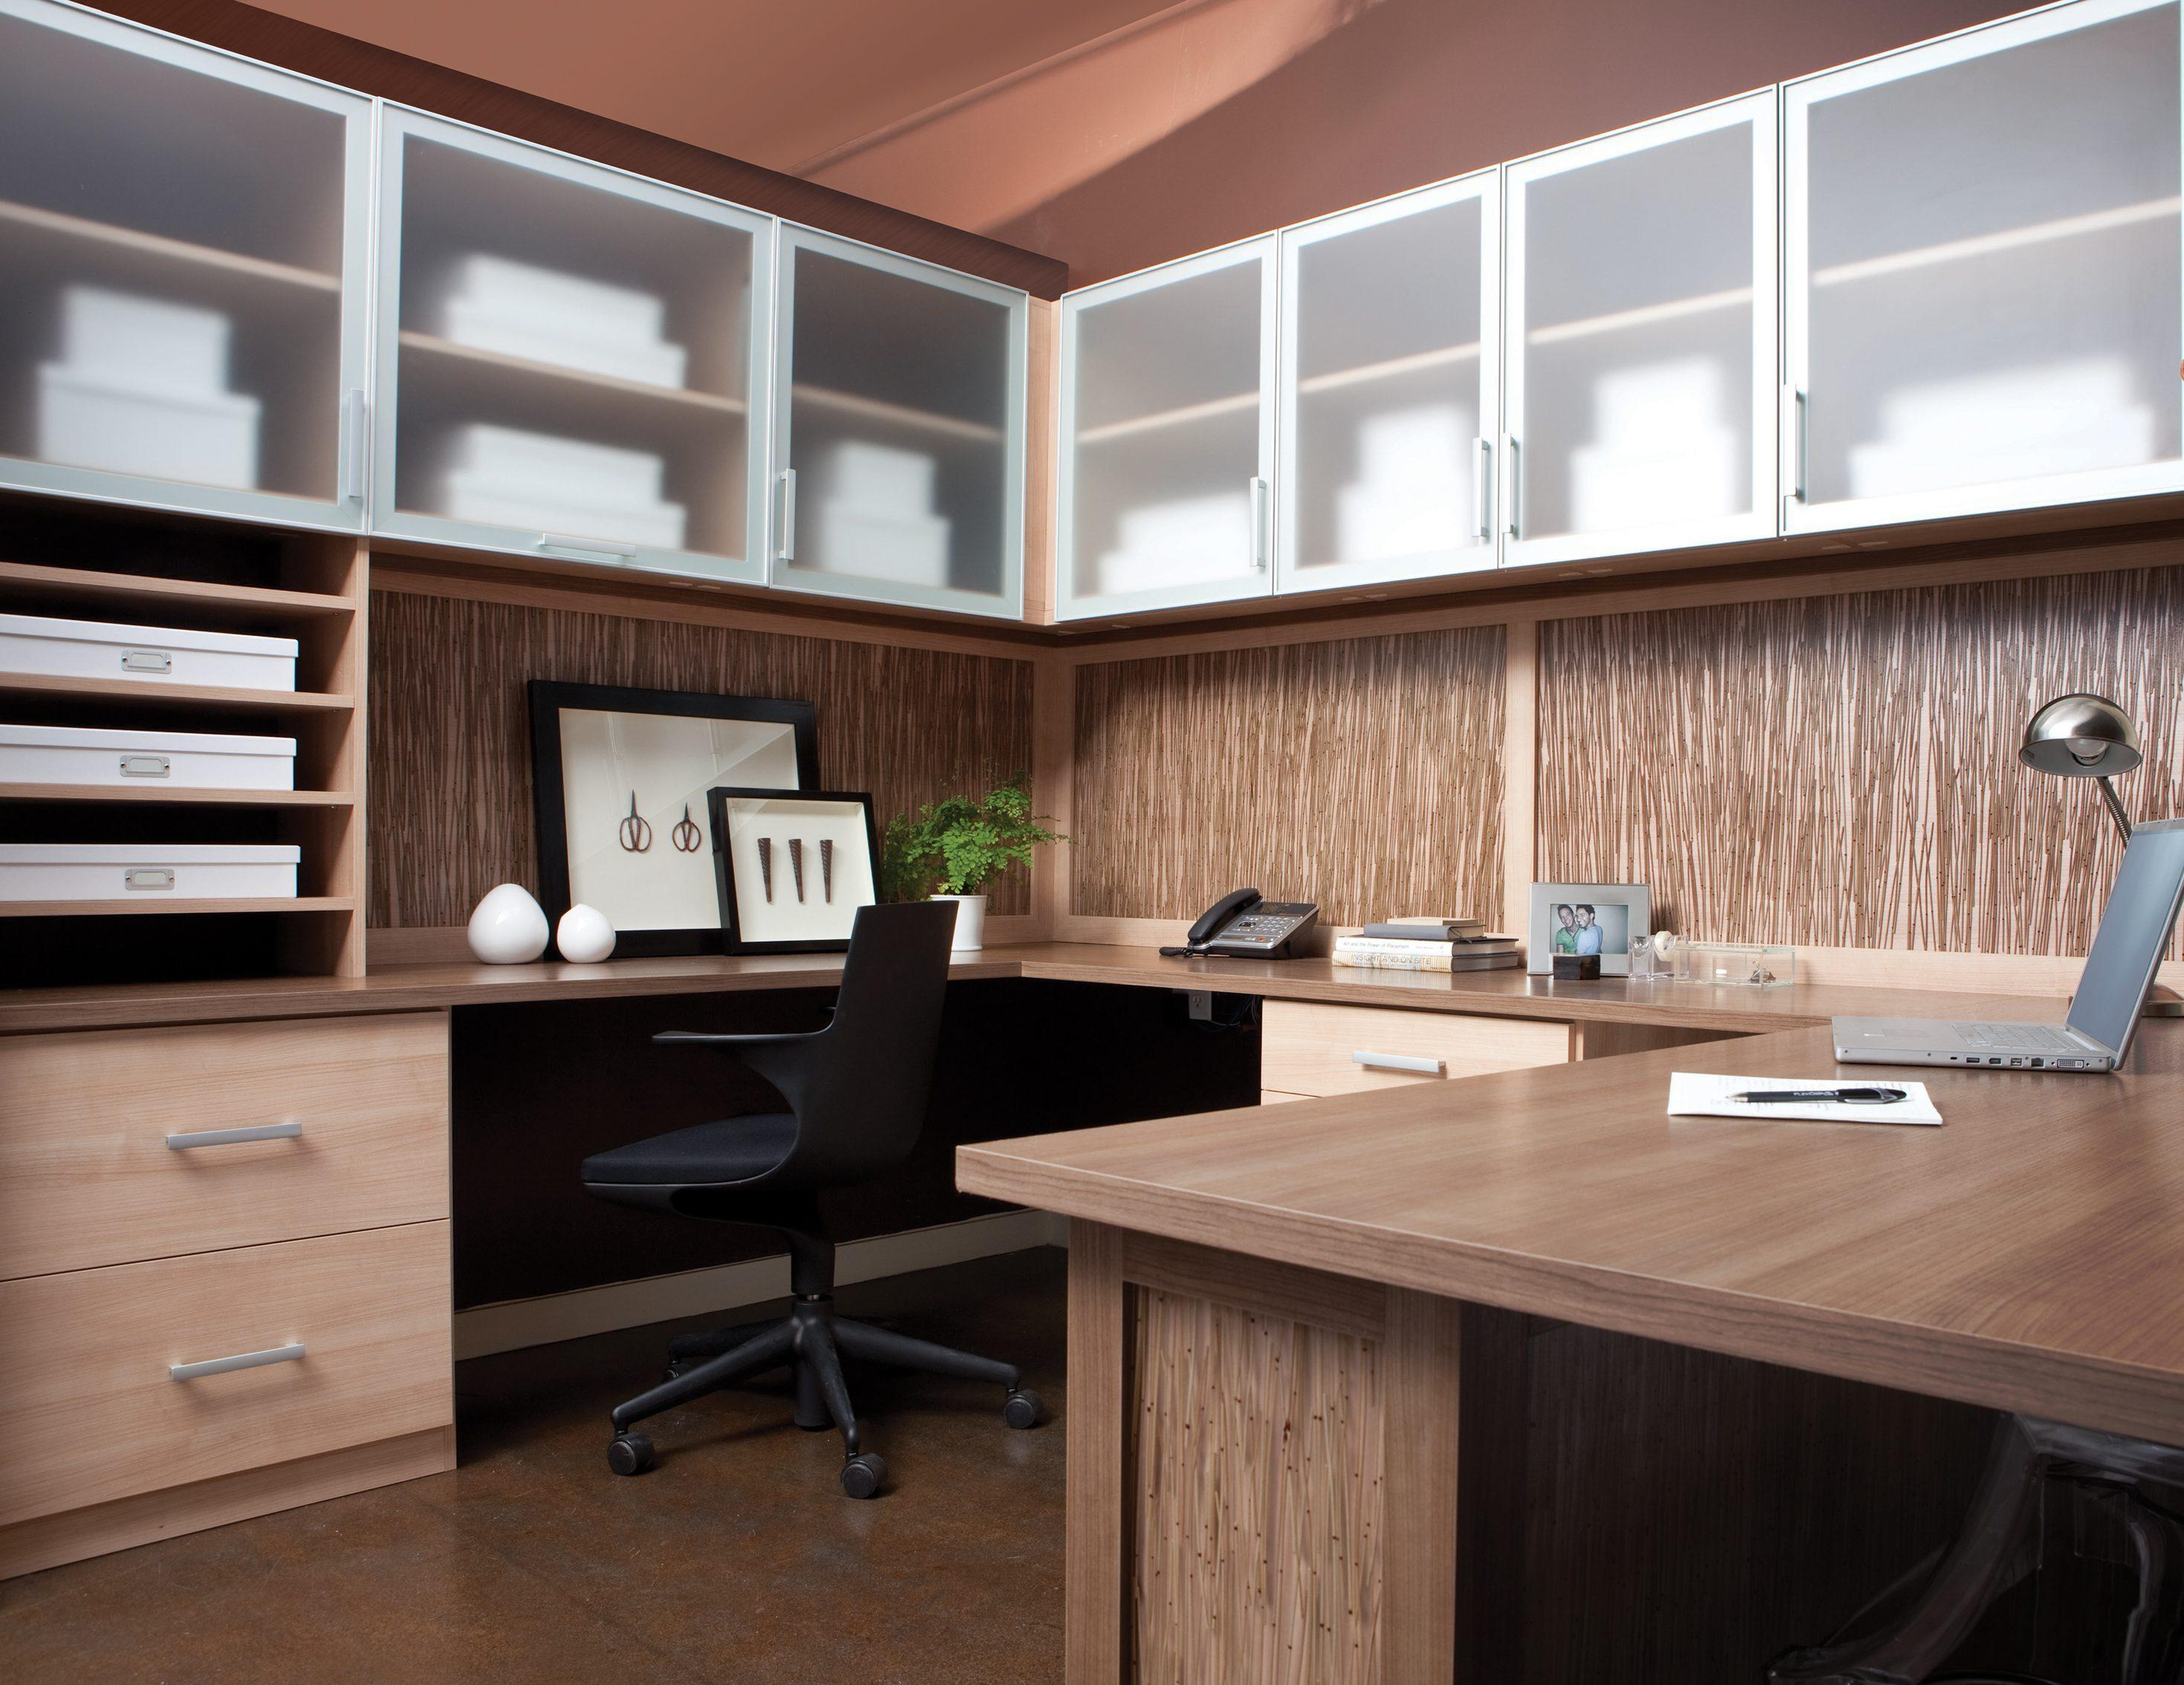 Home office storage furniture solutions & ideas by california closets